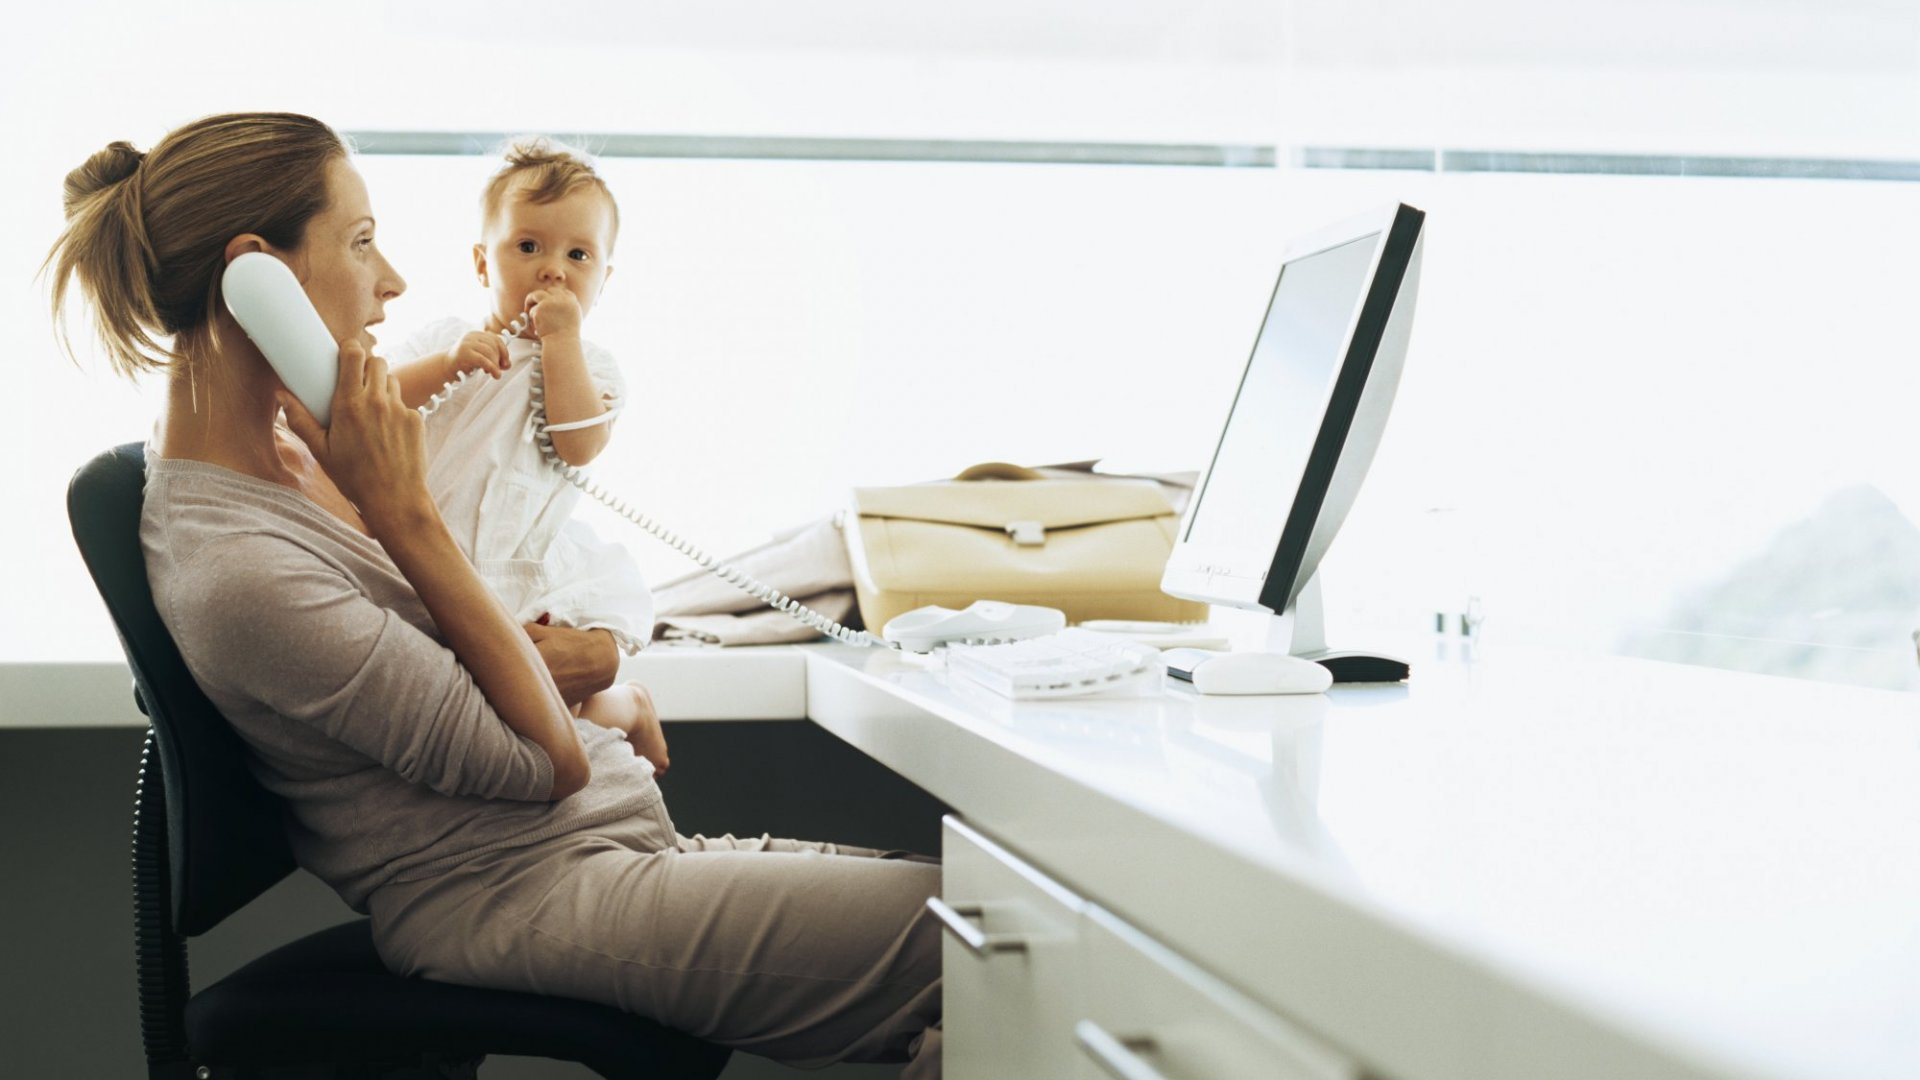 The Real Benefit of Bring Your Kids to Work Day: They'll See Mom Fight